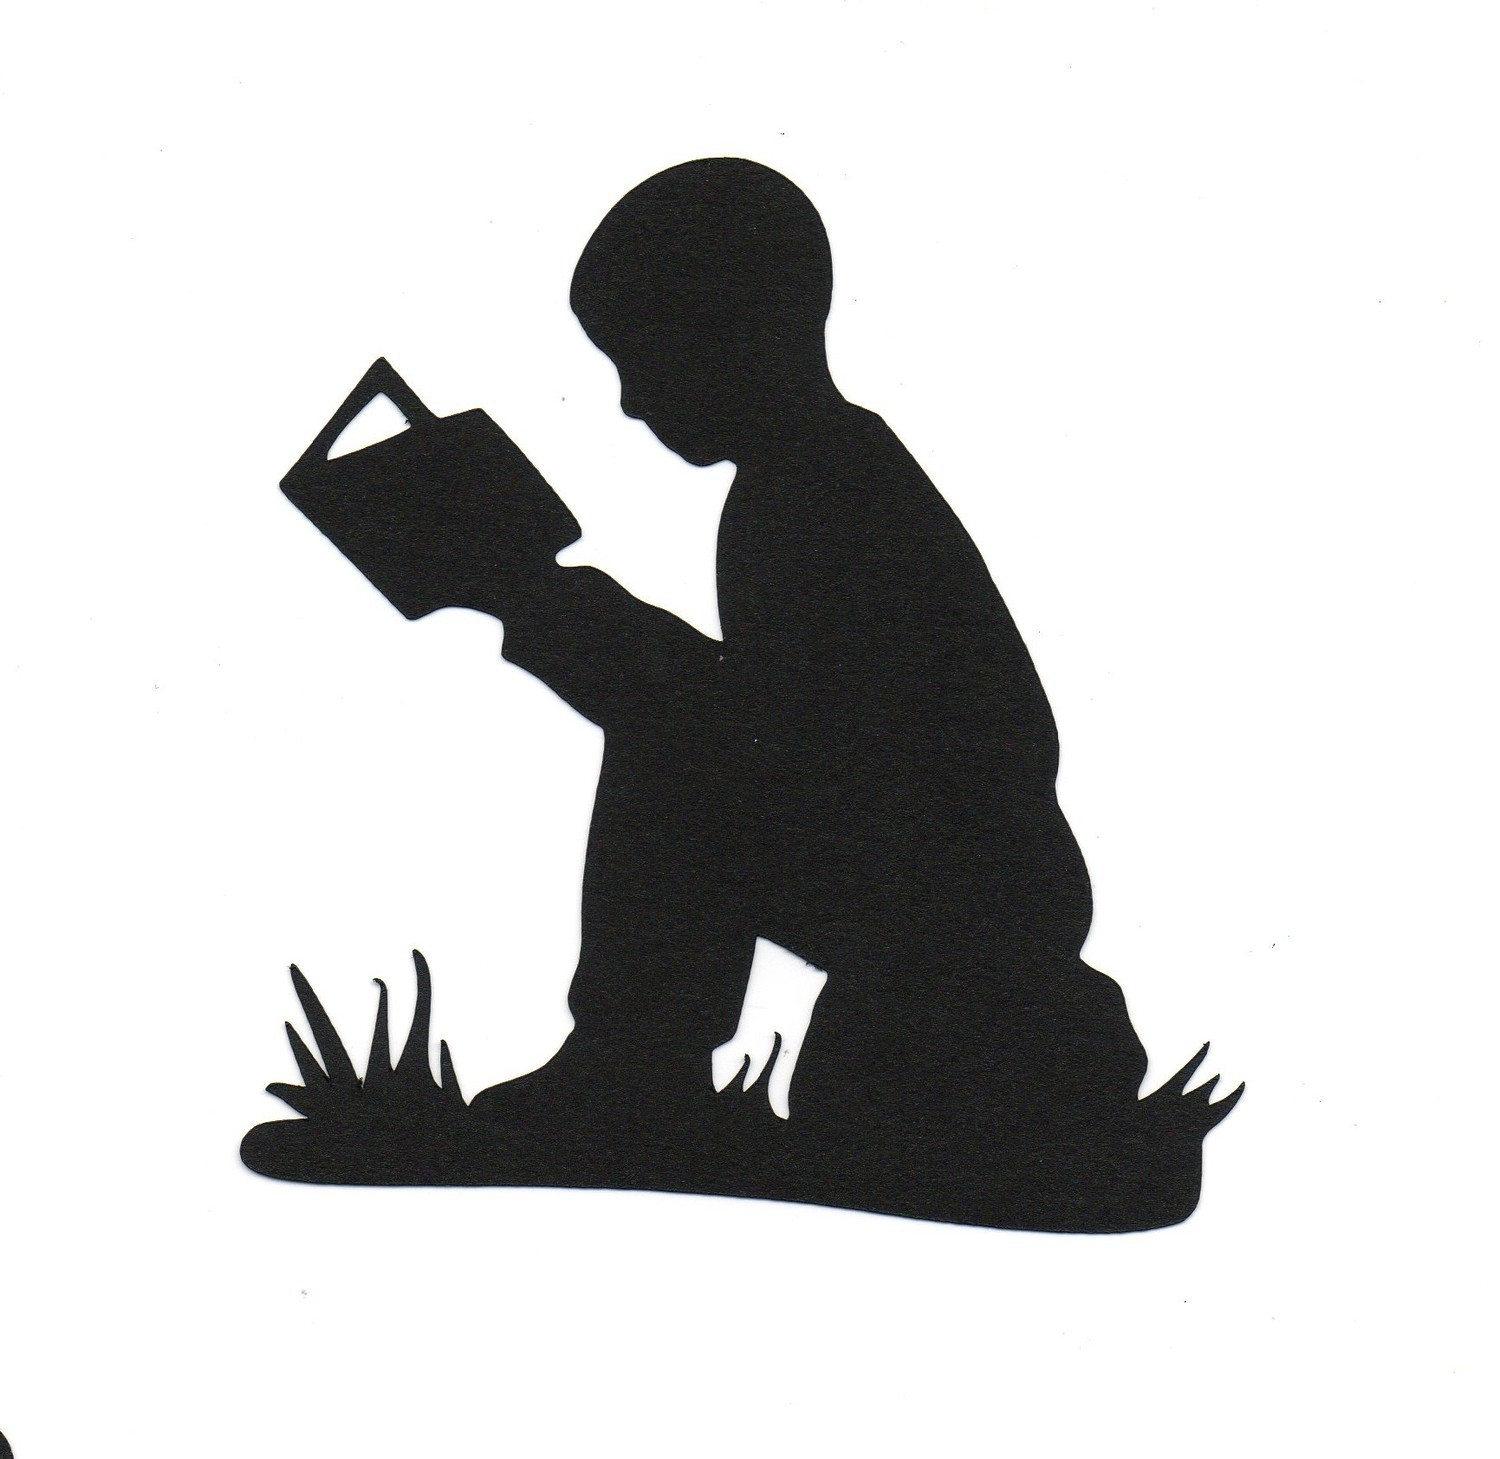 Free reading cliparts download. Clipart books shadow